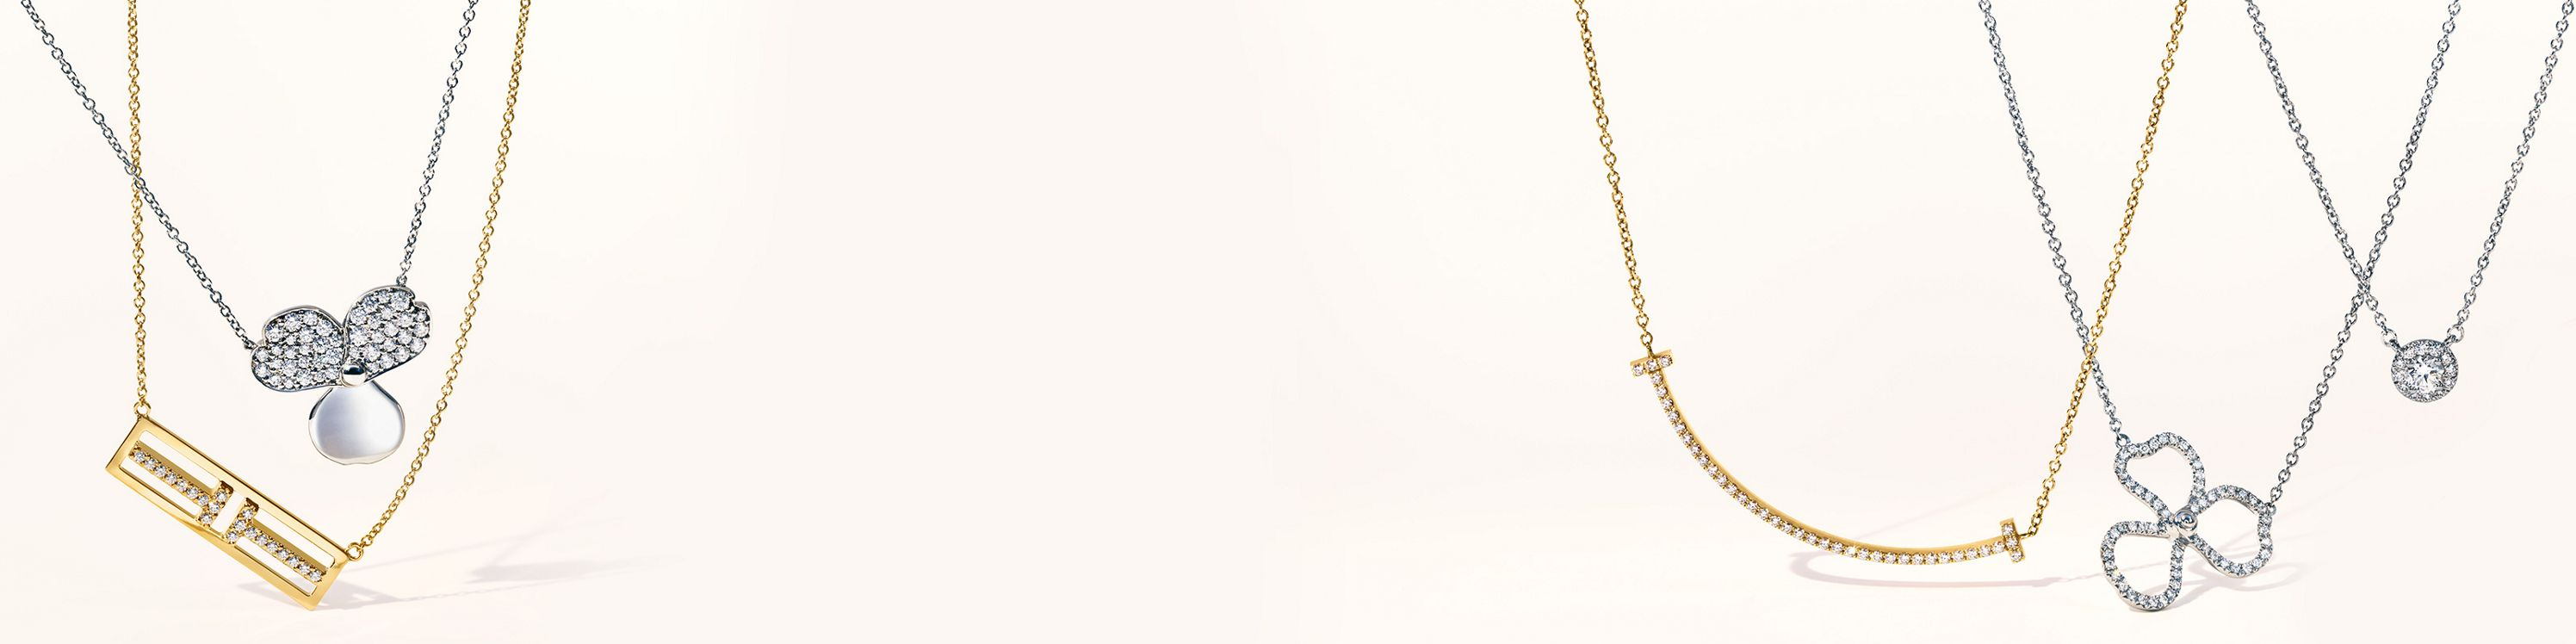 6e2061e1dc Necklaces & Pendants | Tiffany & Co.